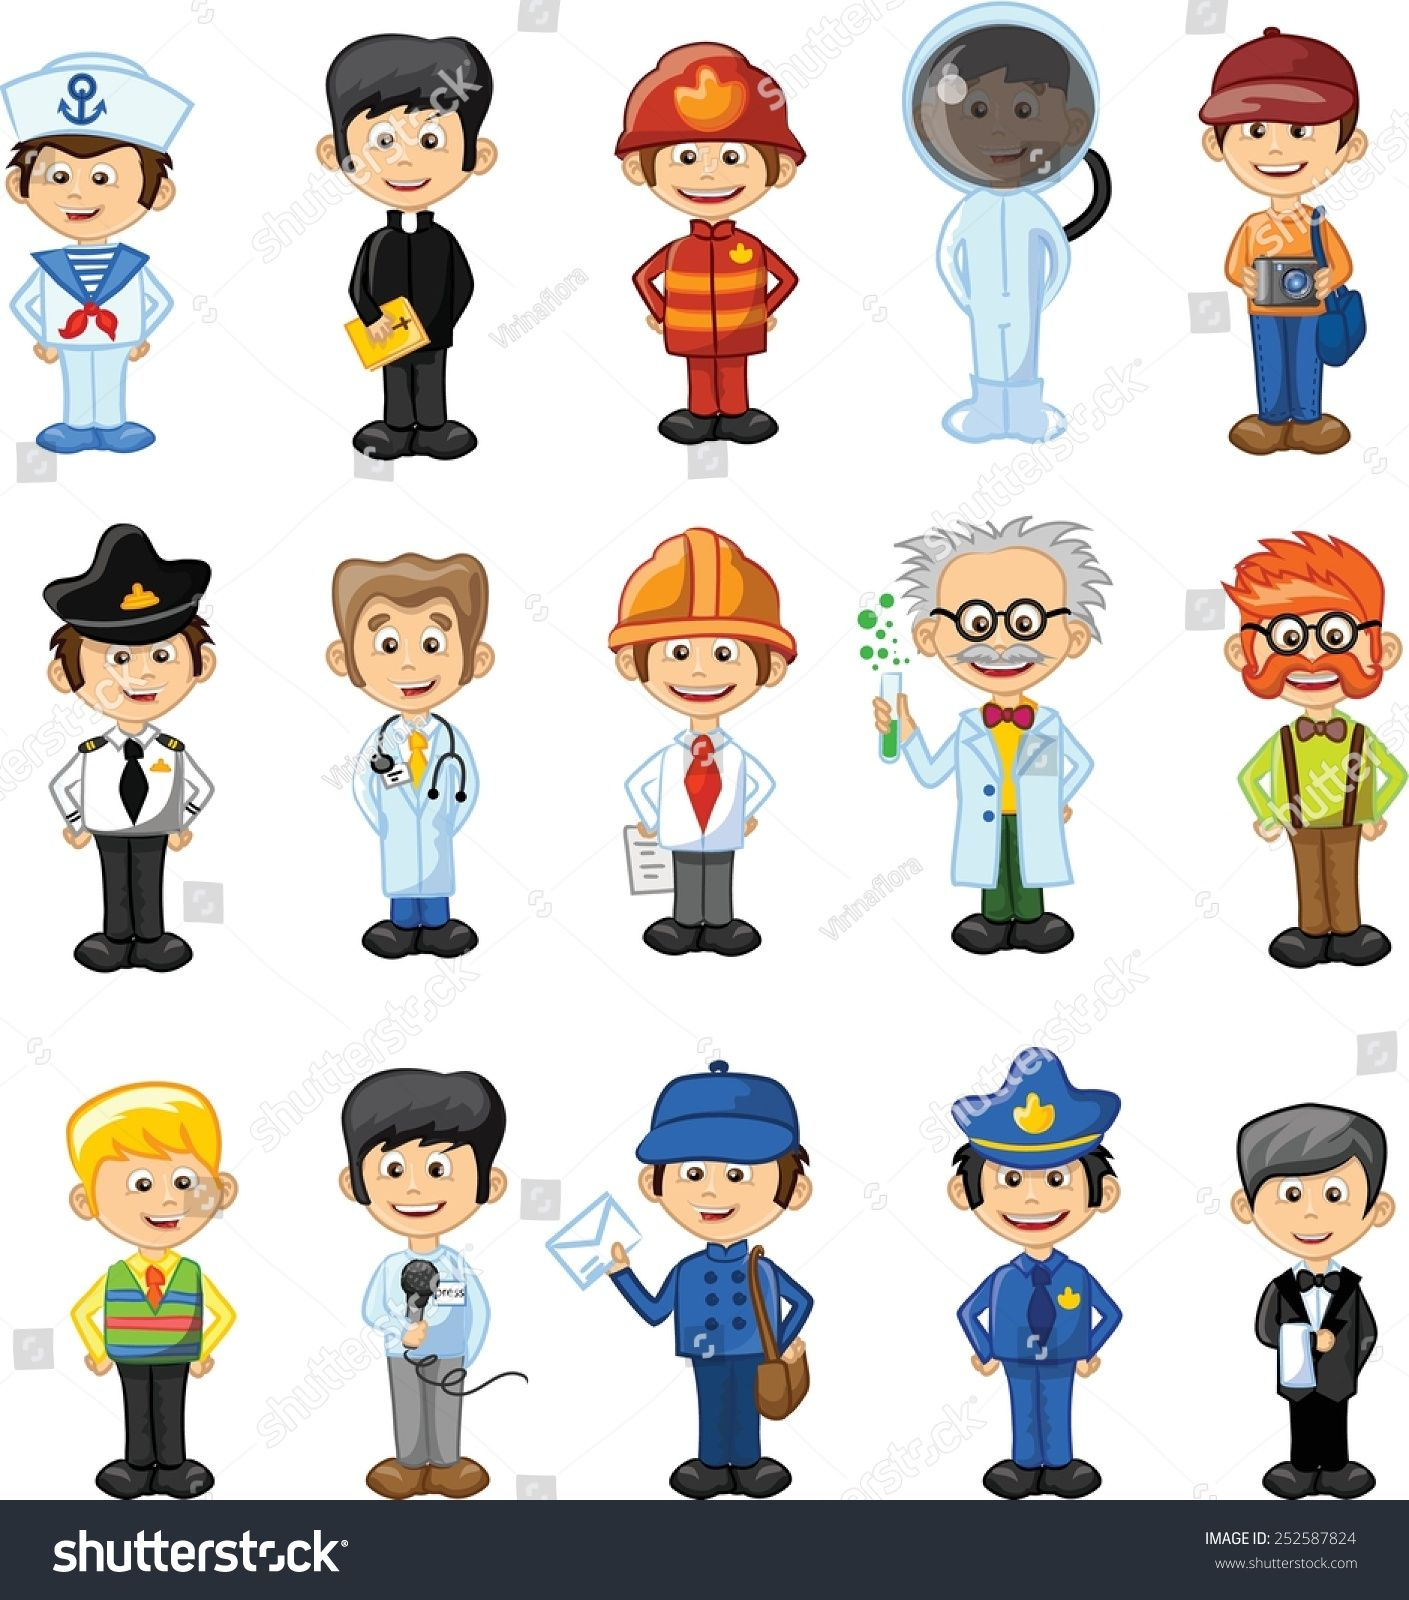 Cartoon Characters Jobs : Cartoon vector characters of different professions